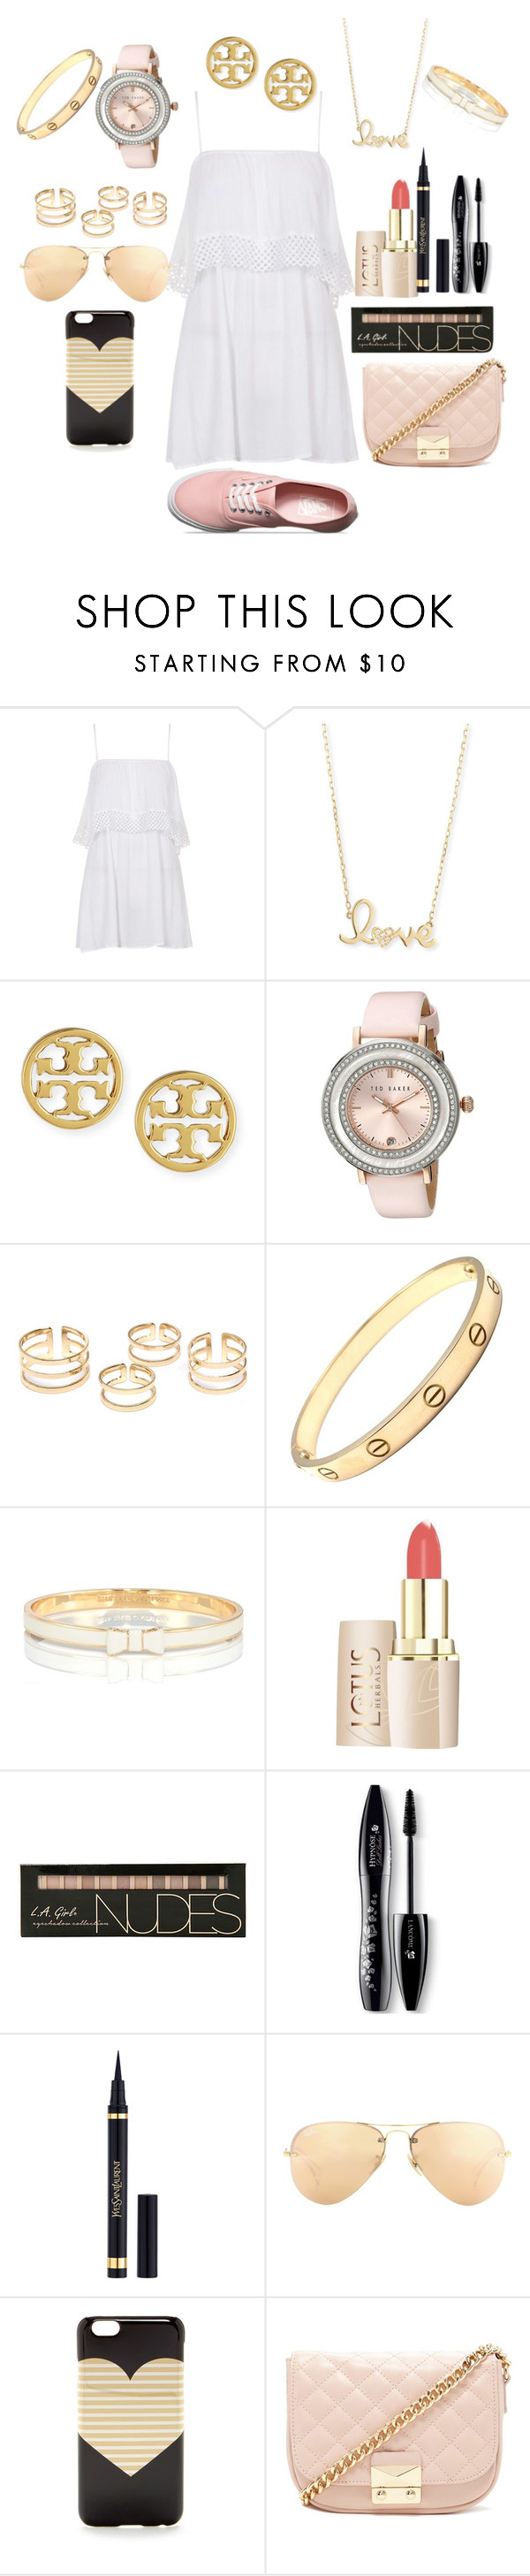 """""""Style the heat wave!"""" by sunglassesforstyle ❤ liked on Polyvore featuring Topshop, Sydney Evan, Tory Burch, Ted Baker, Cartier, Kate Spade, Lancôme, Ray-Ban, J.Crew and Forever 21"""